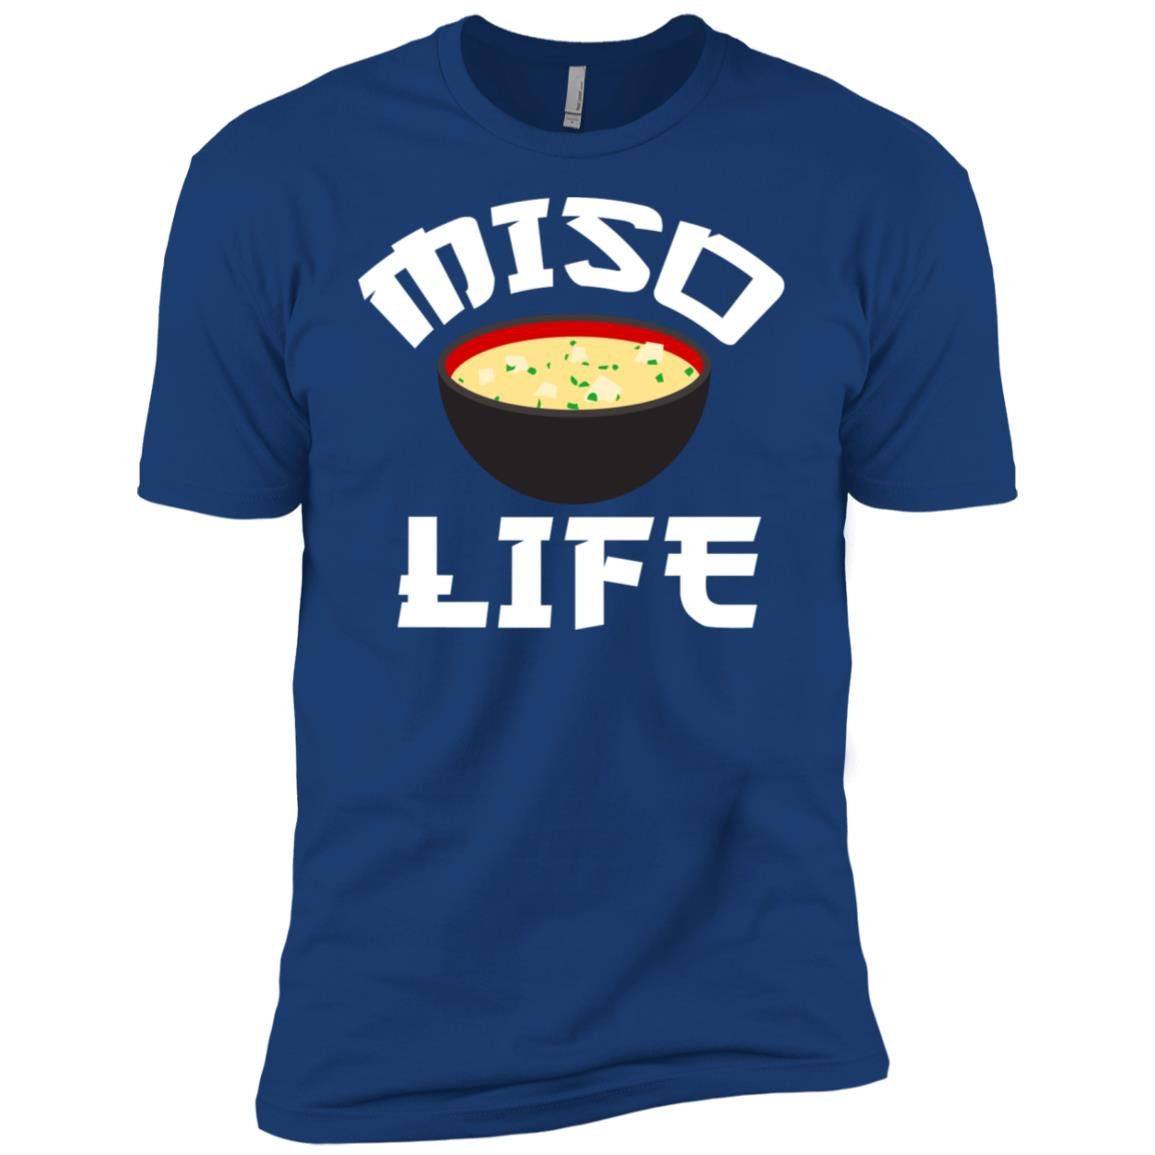 Japanese Miso Anime Miso Life Food Lover Men Short Sleeve T-Shirt